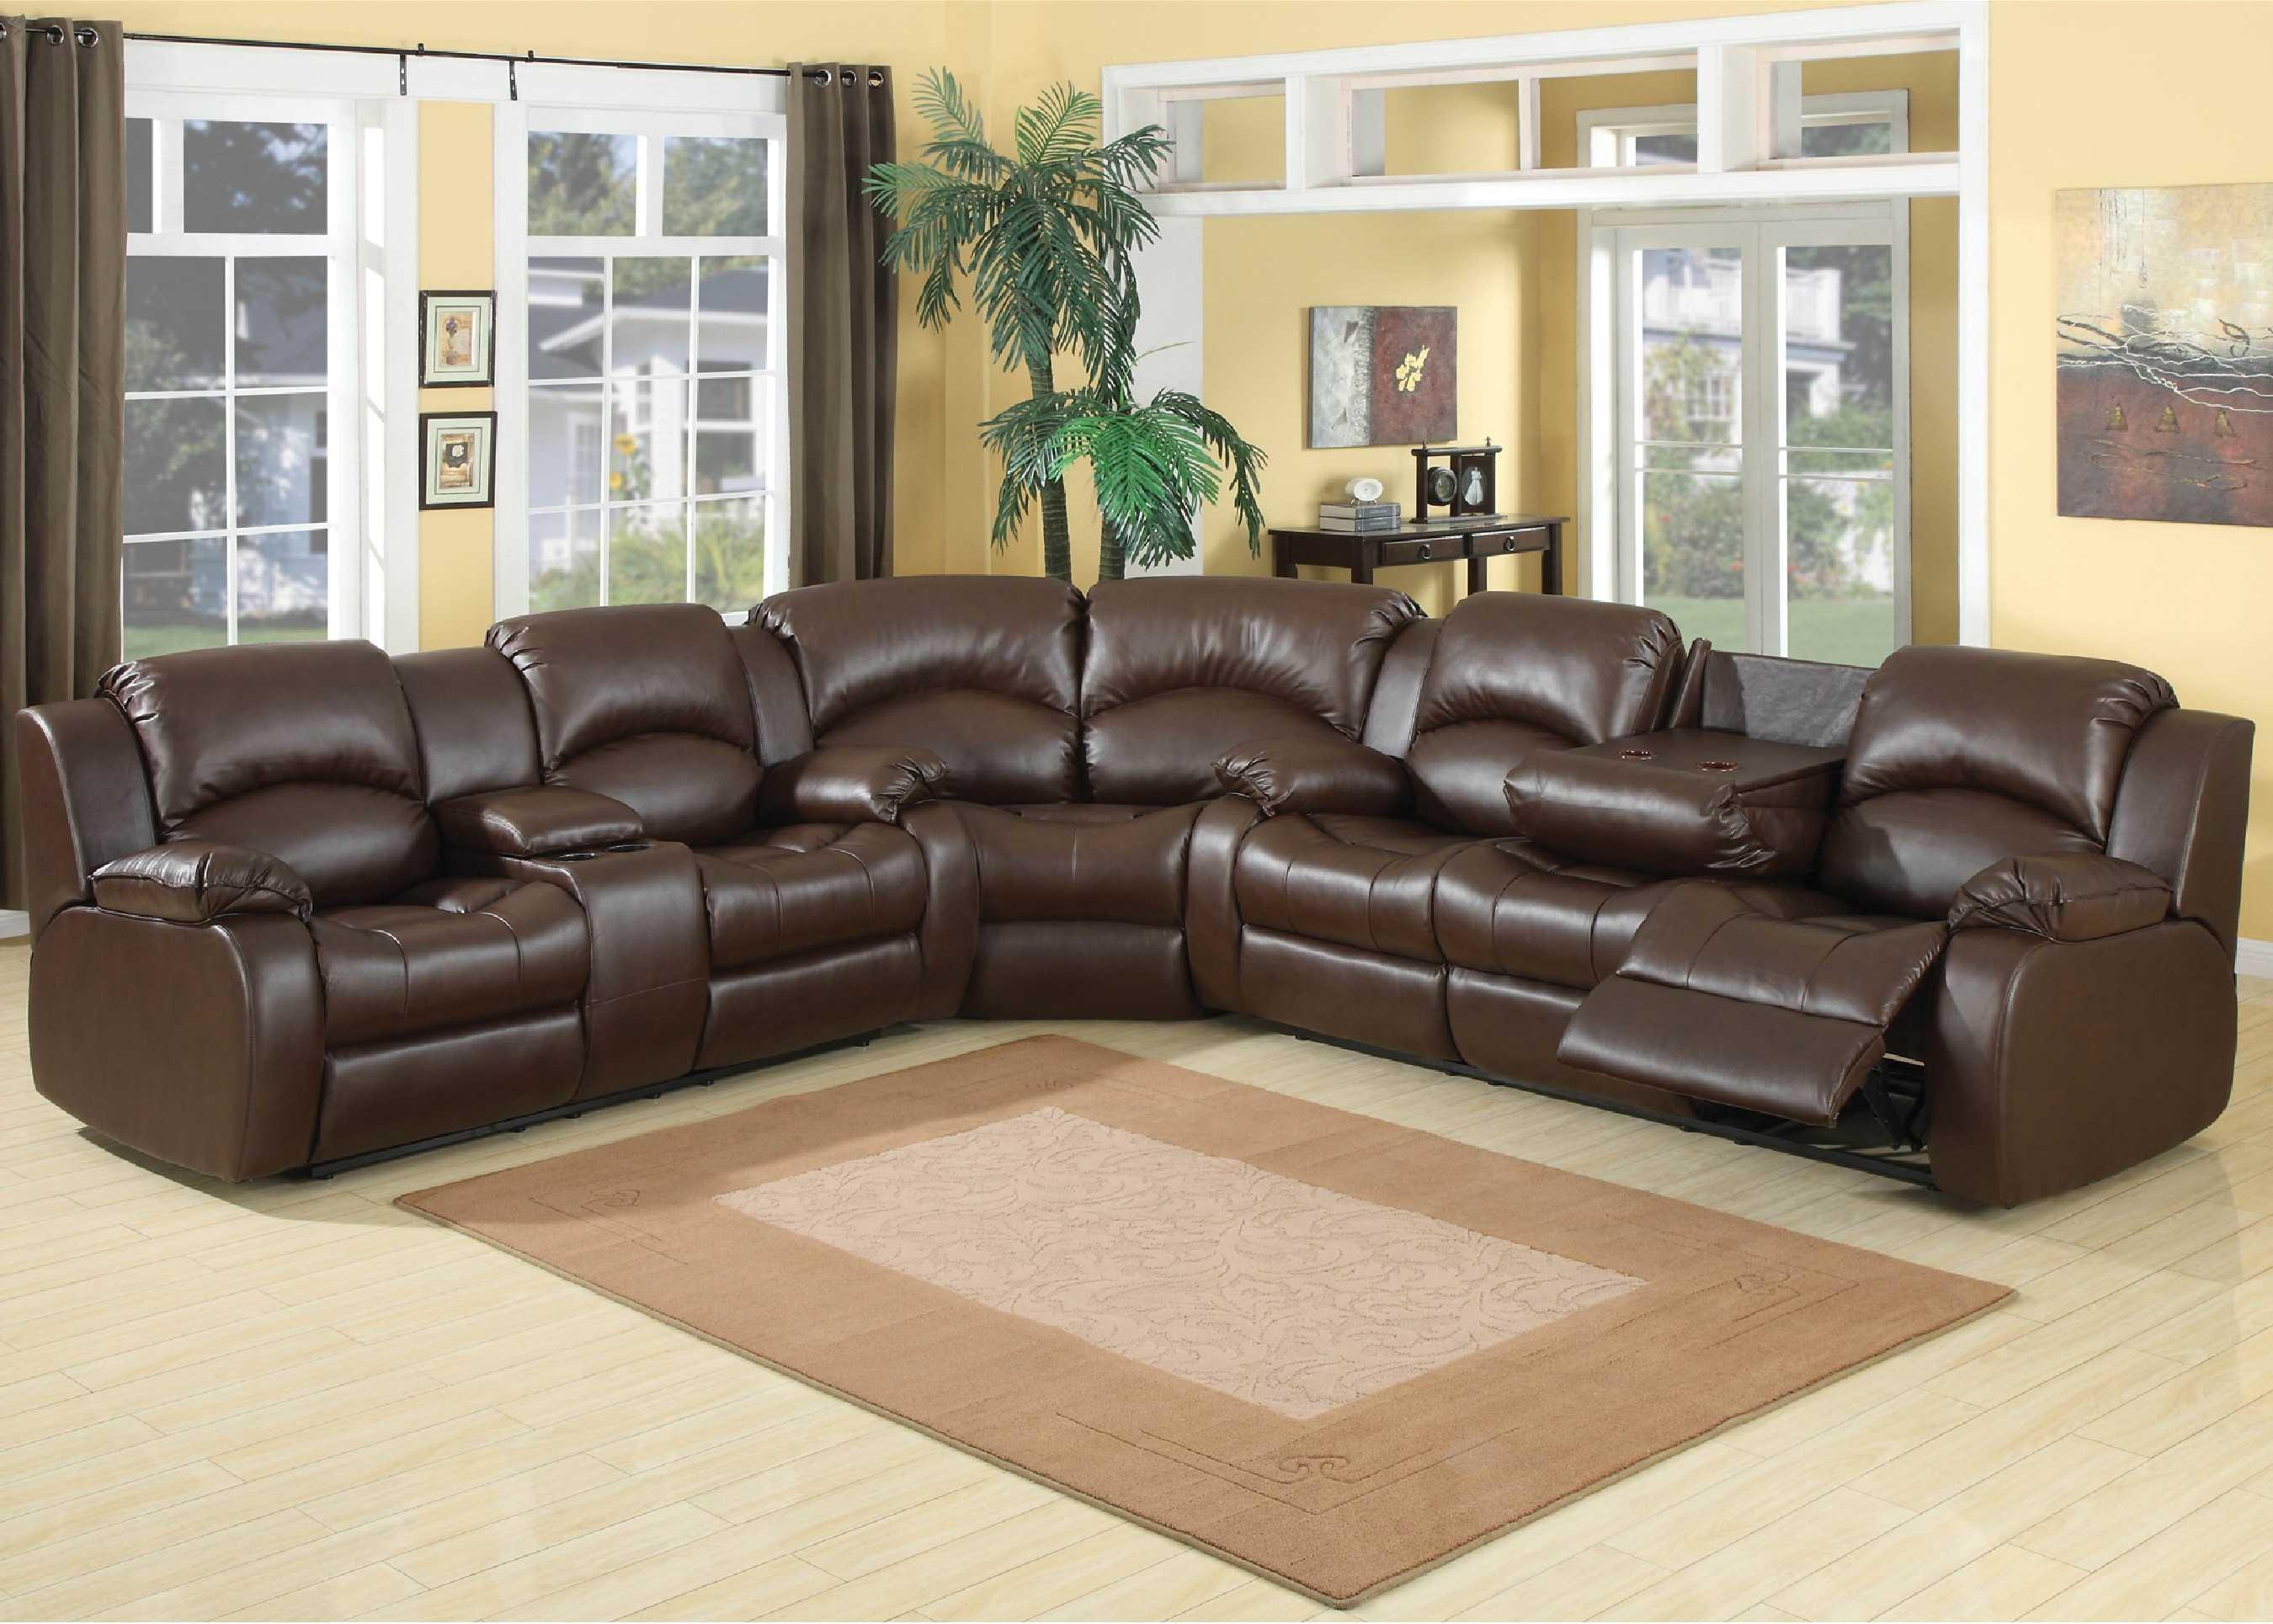 Living Room : Sectional Sofas With Recliners For Small Spaces In Sectional Sofa Recliners (View 9 of 20)